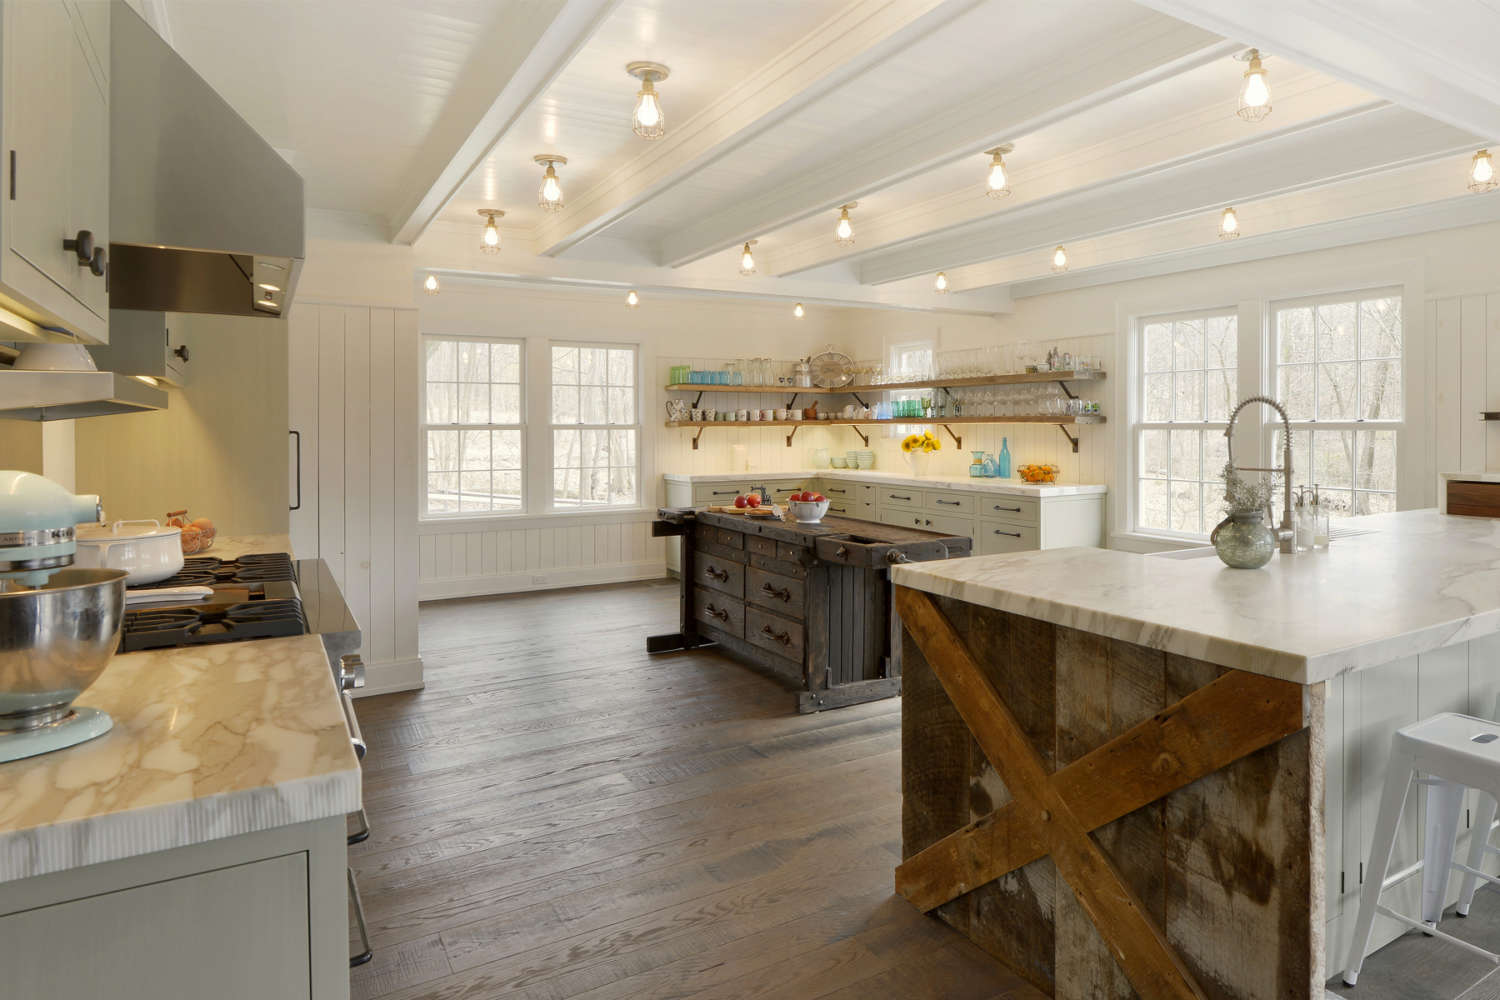 Expansive country kitchen features white beadboard ceiling and walls, exposed lighting, oversized windows, wood plank flooring, fully custom flat panel inset pale green painted Bilotta Cabinetry with oil rubbed bronze hardware, open shelving, white marble countertops and a rustic custom wood island. Design by Paulette Gambacorta of Bilotta Kitchens.